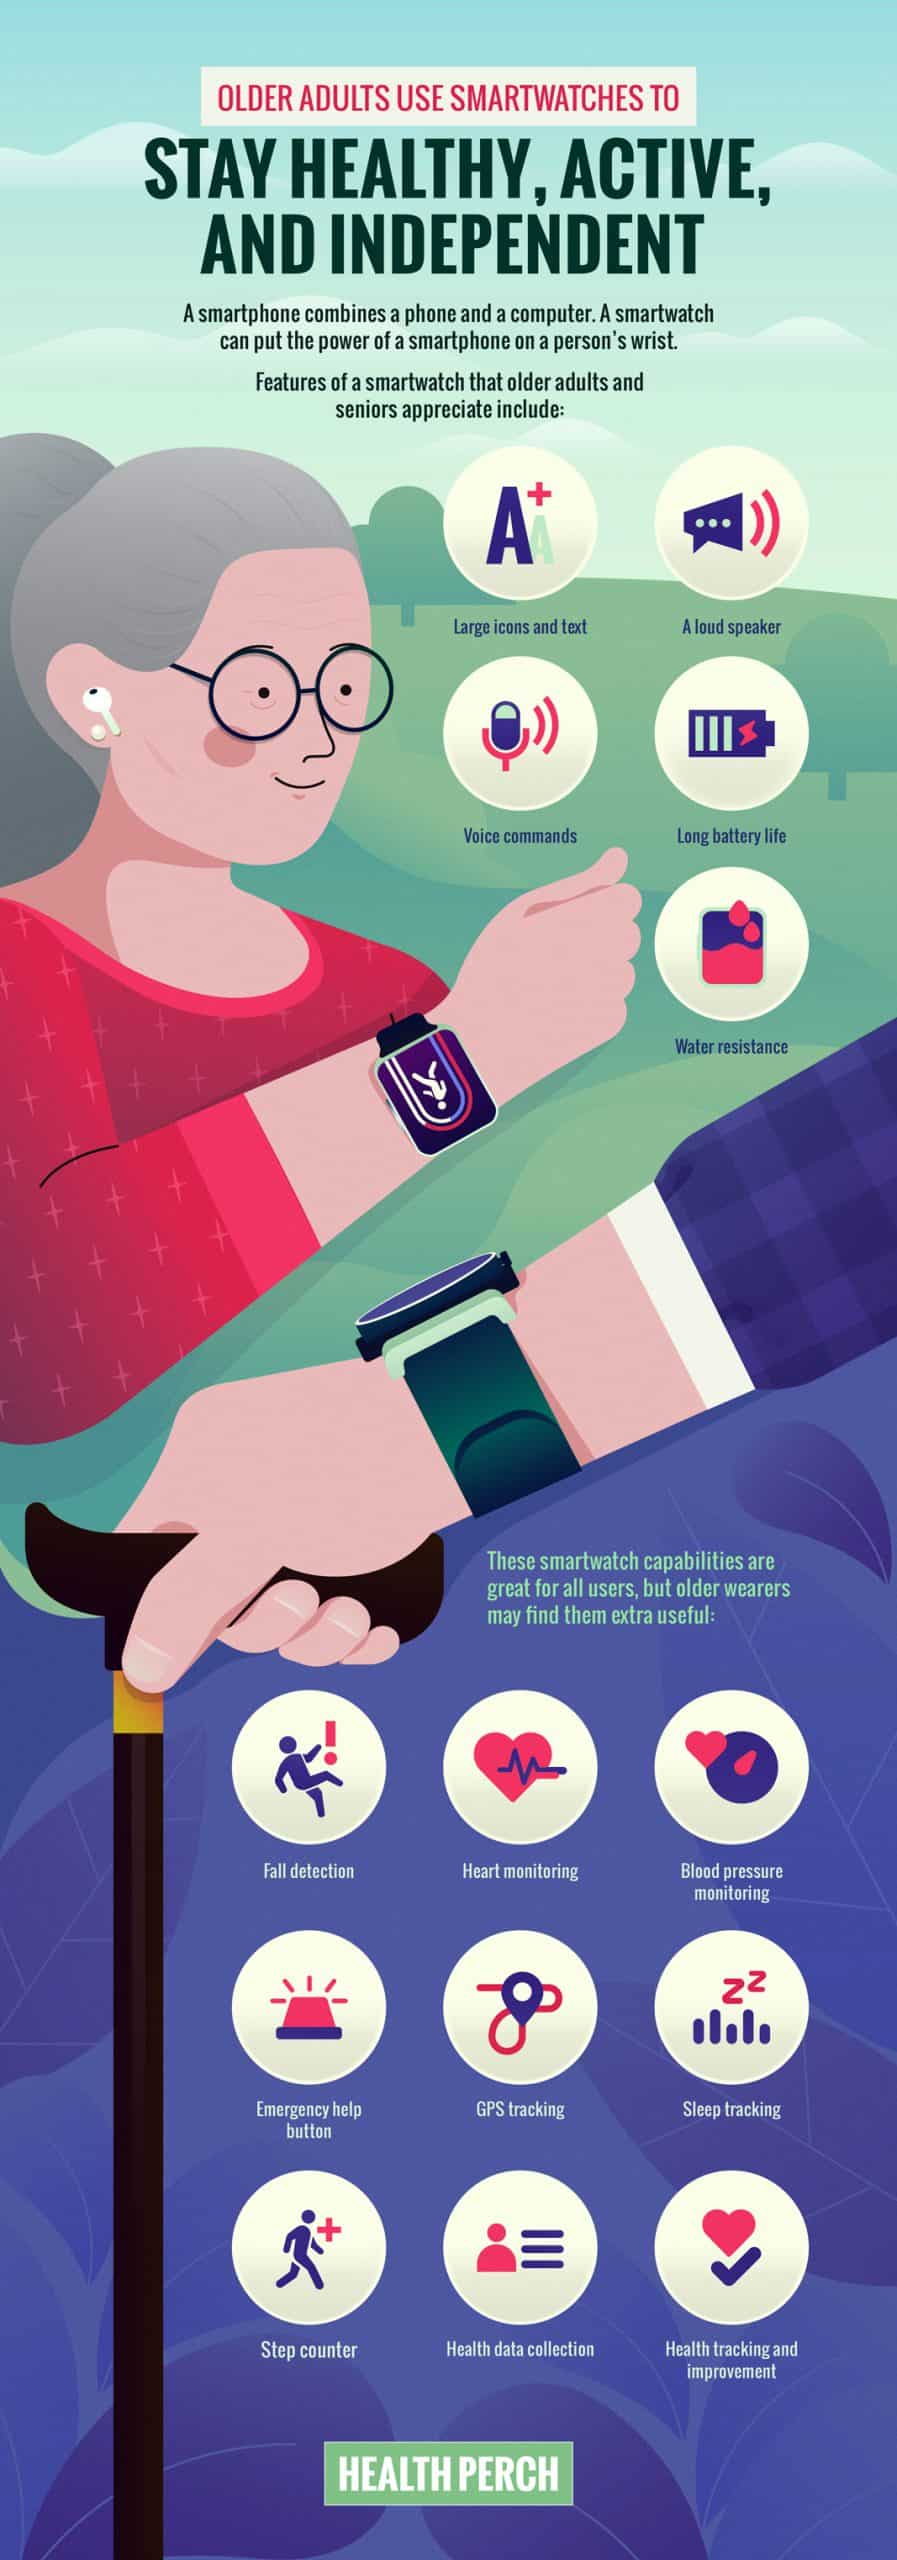 The Best Smartwatch Features for Seniors